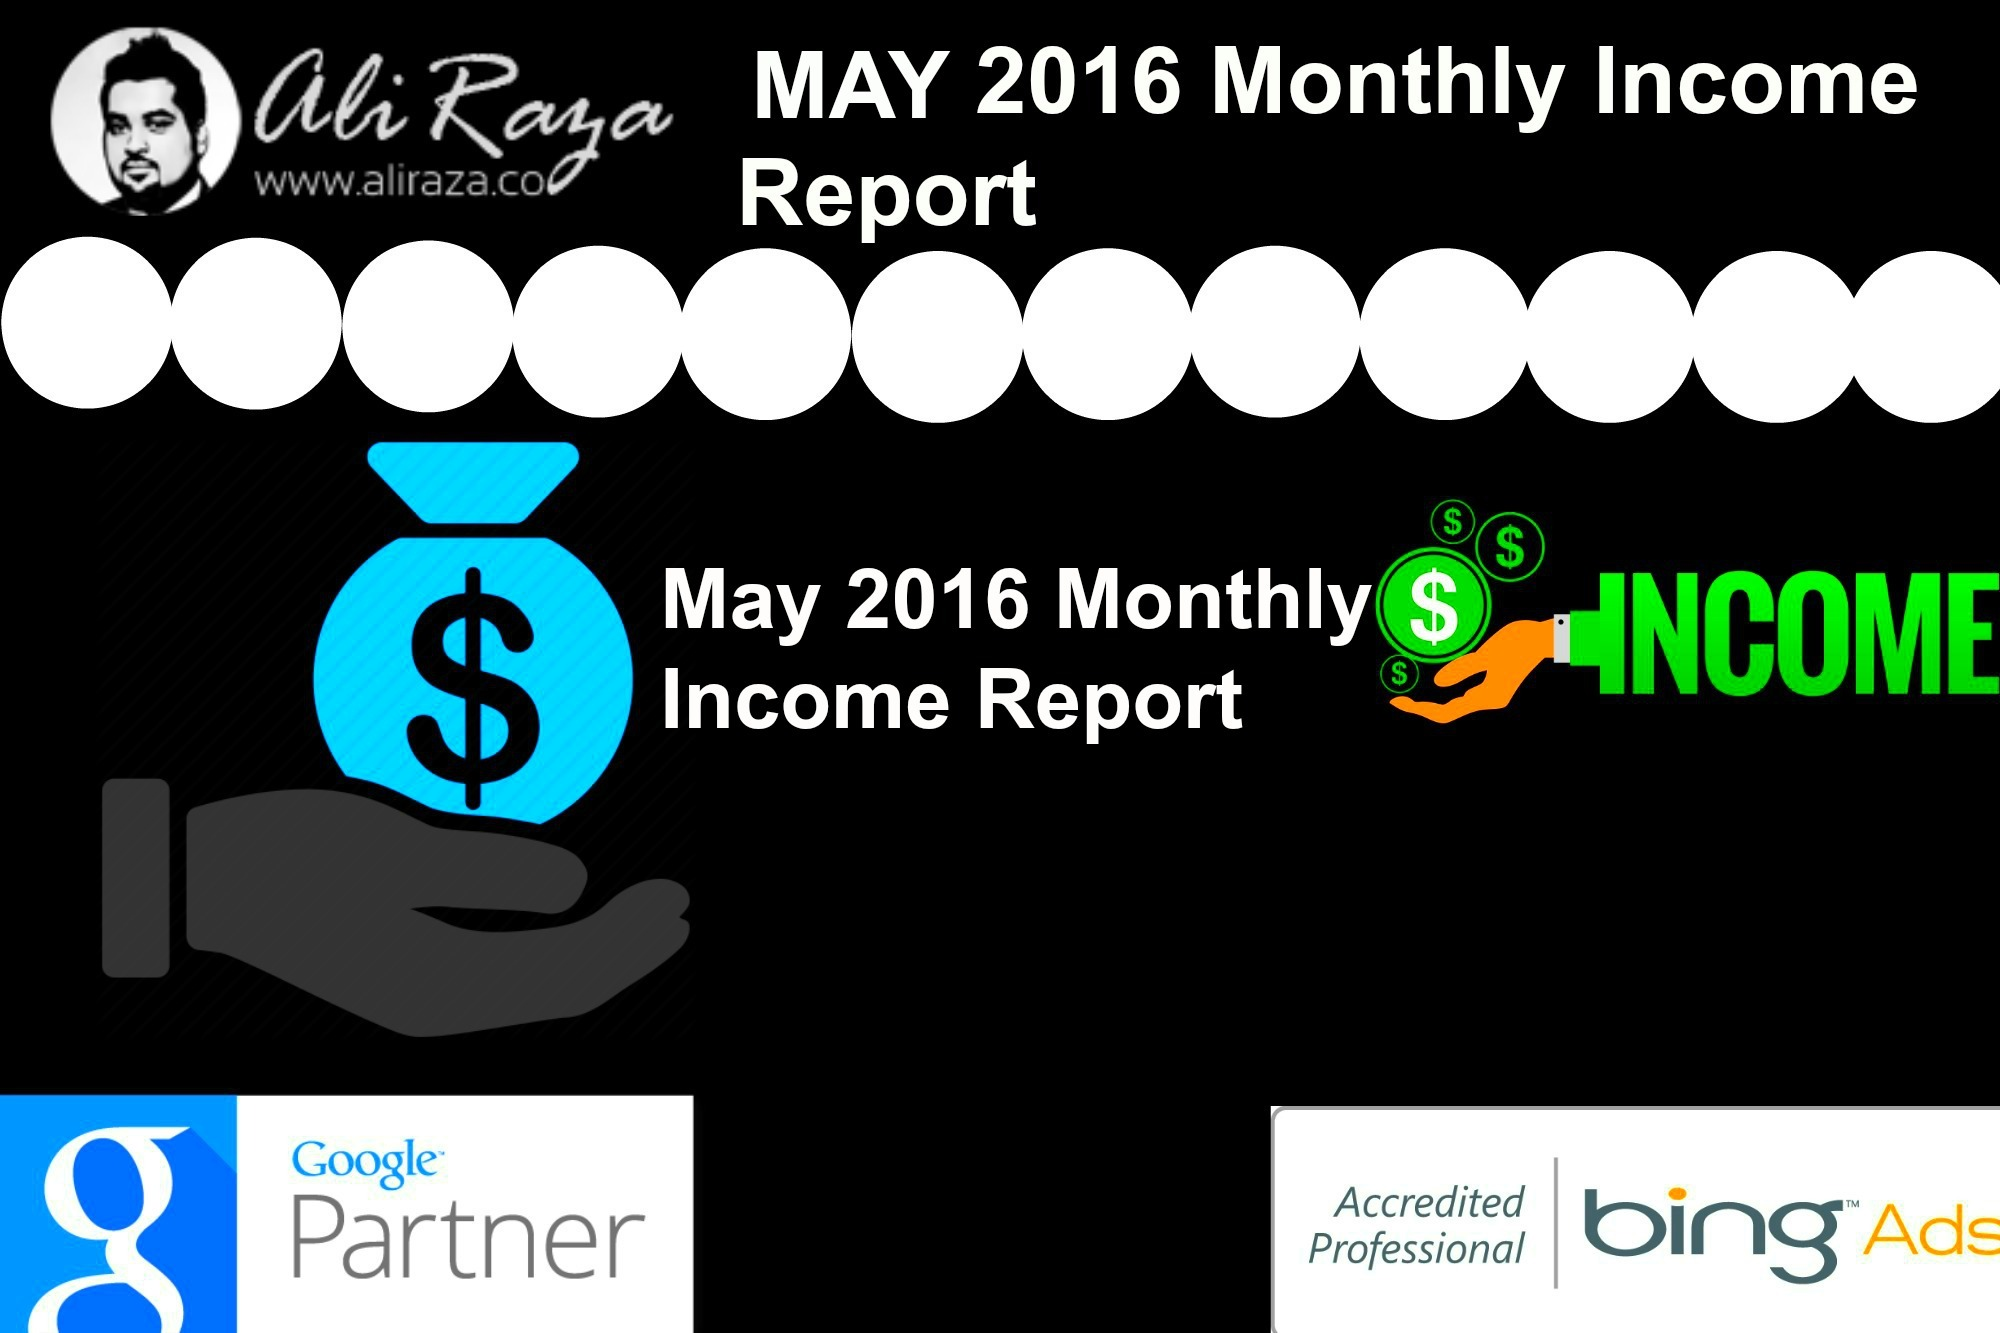 aliraza.co may 2016 monthly income report aliraza.co